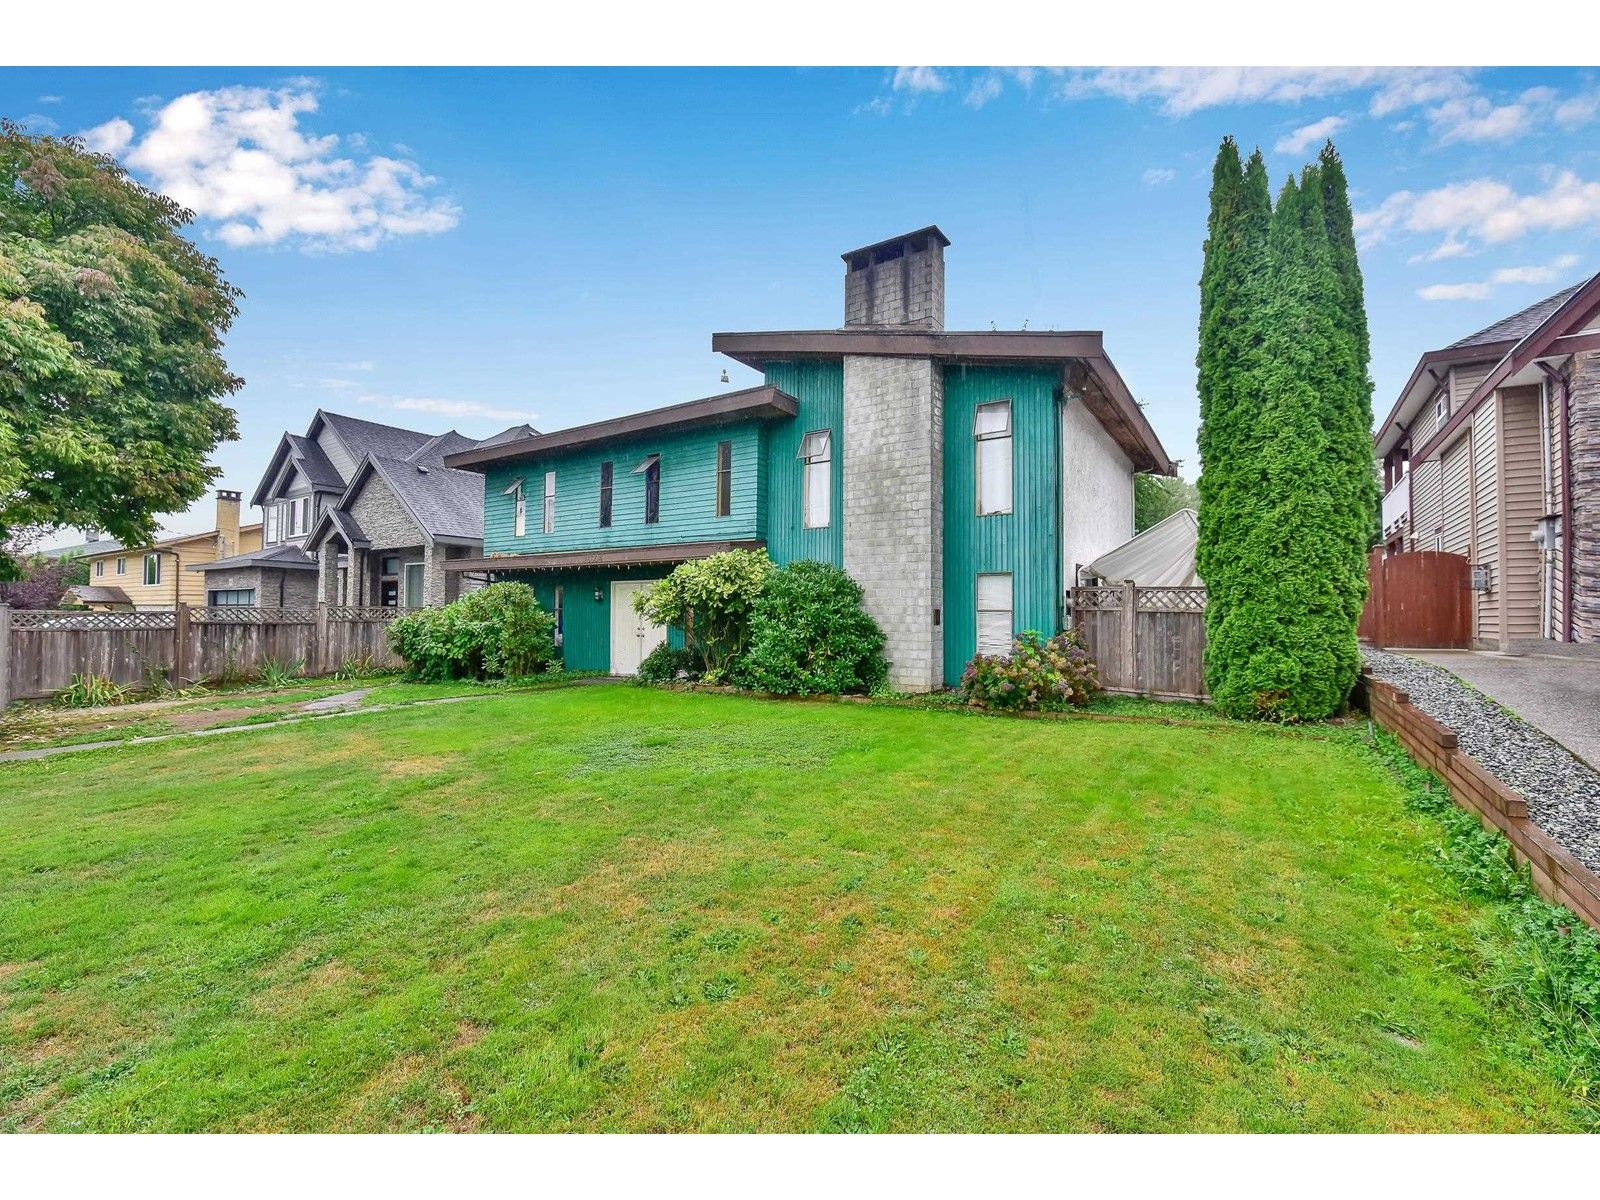 Main Photo: 15554 104A AVENUE in SURREY: House for sale : MLS®# R2545063